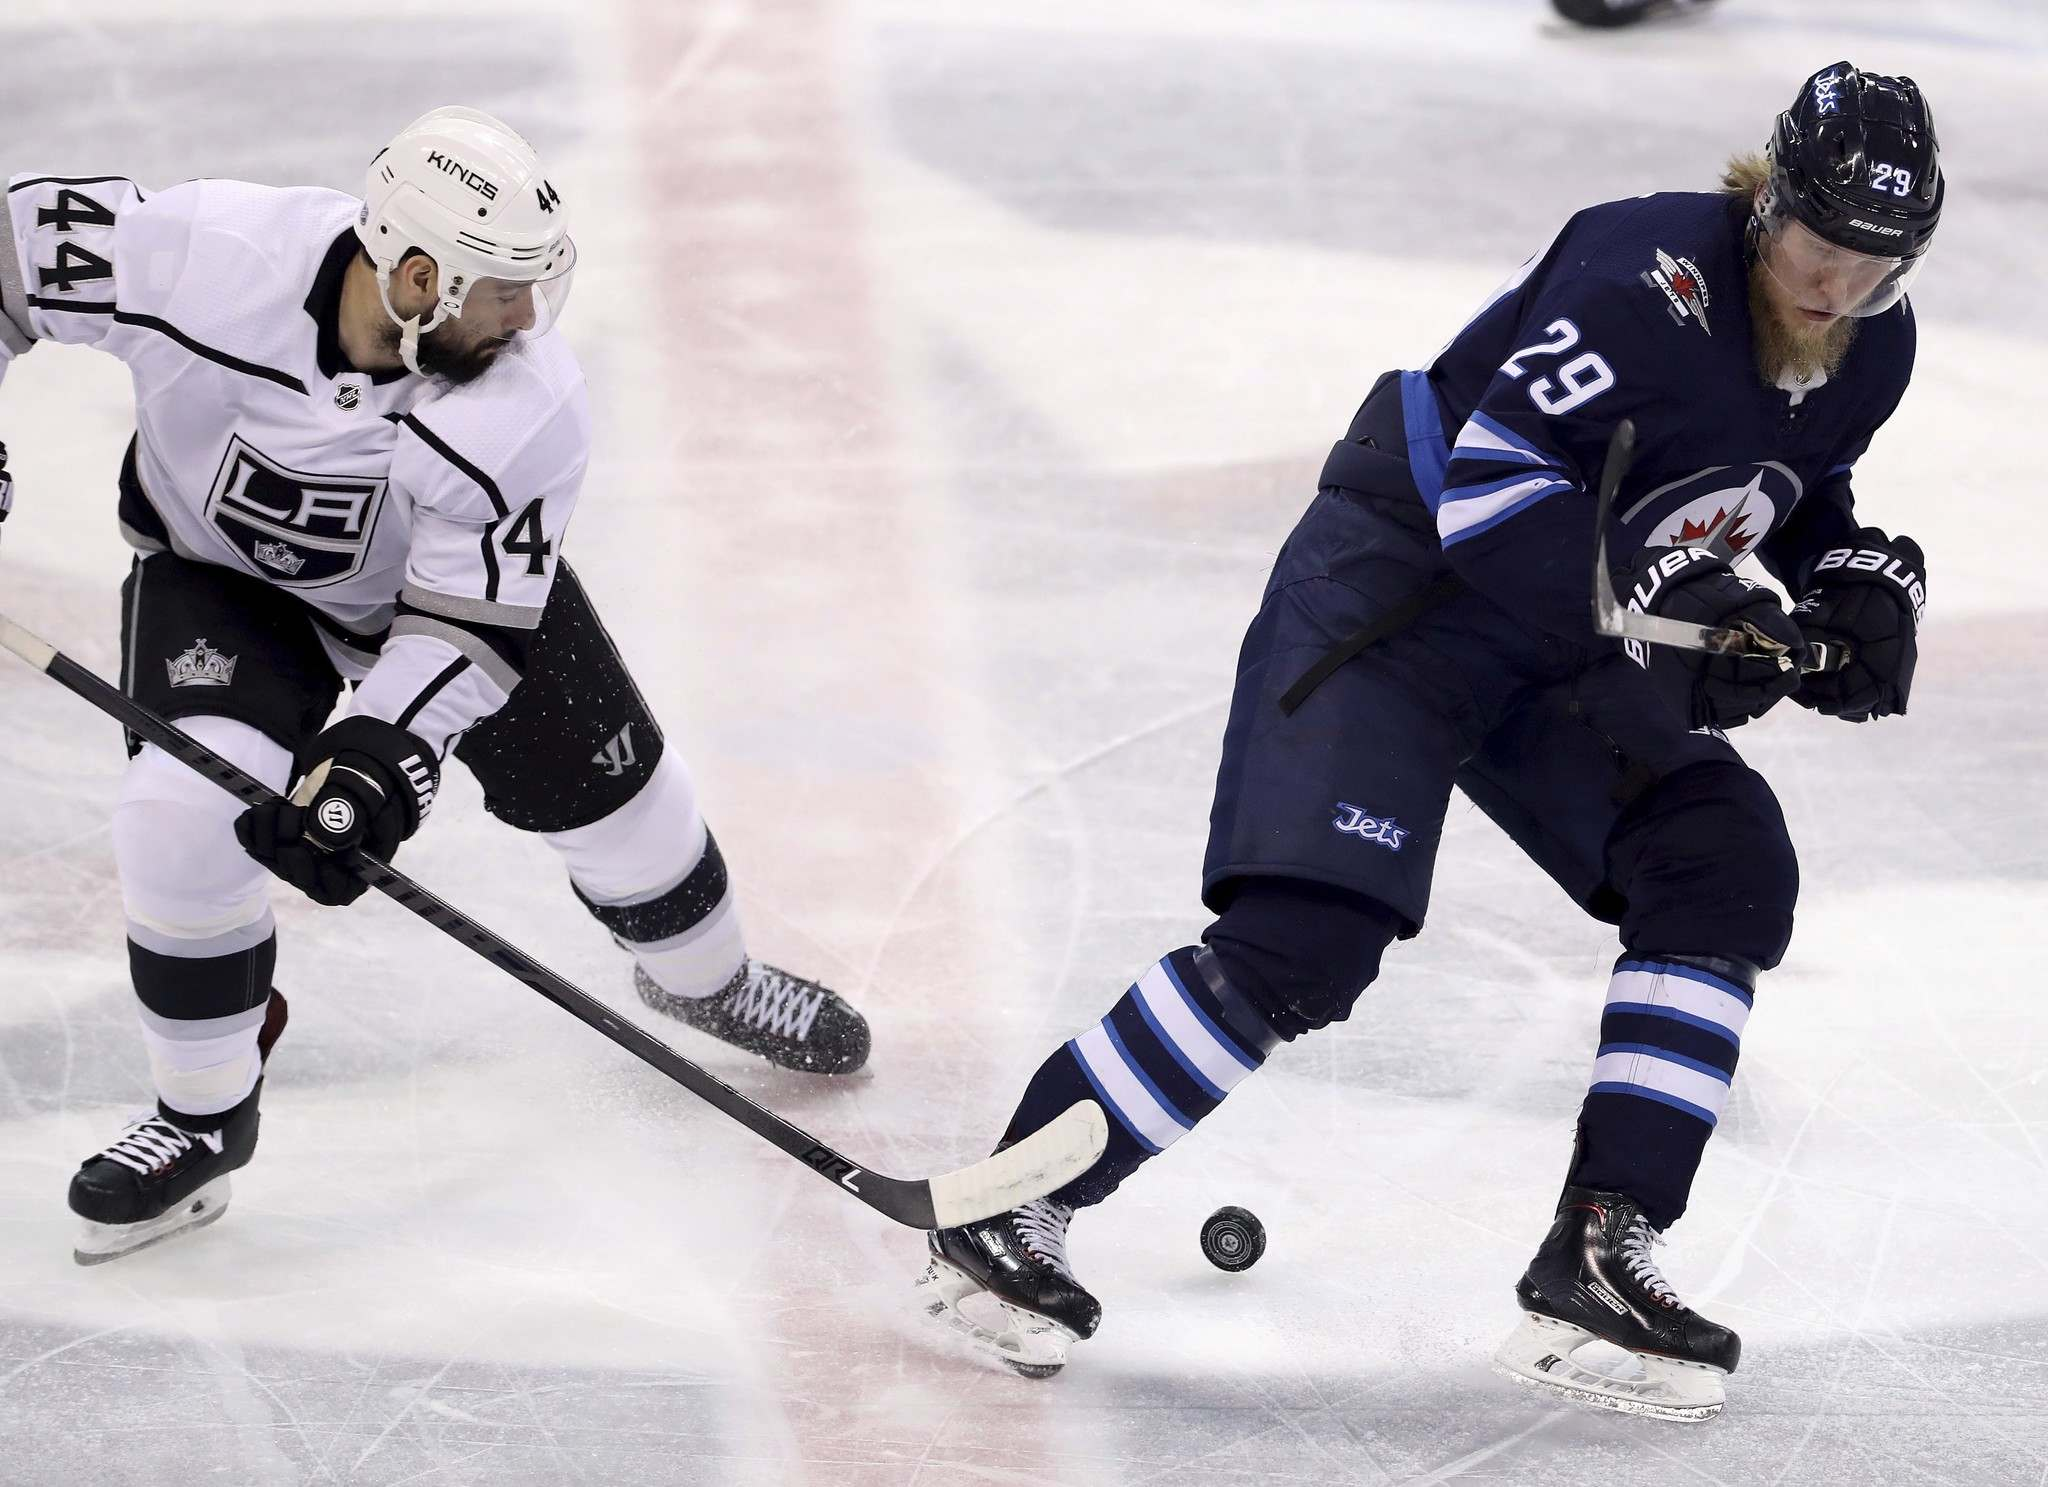 Connor scores both goals to lead Jets to overtime win over Kings